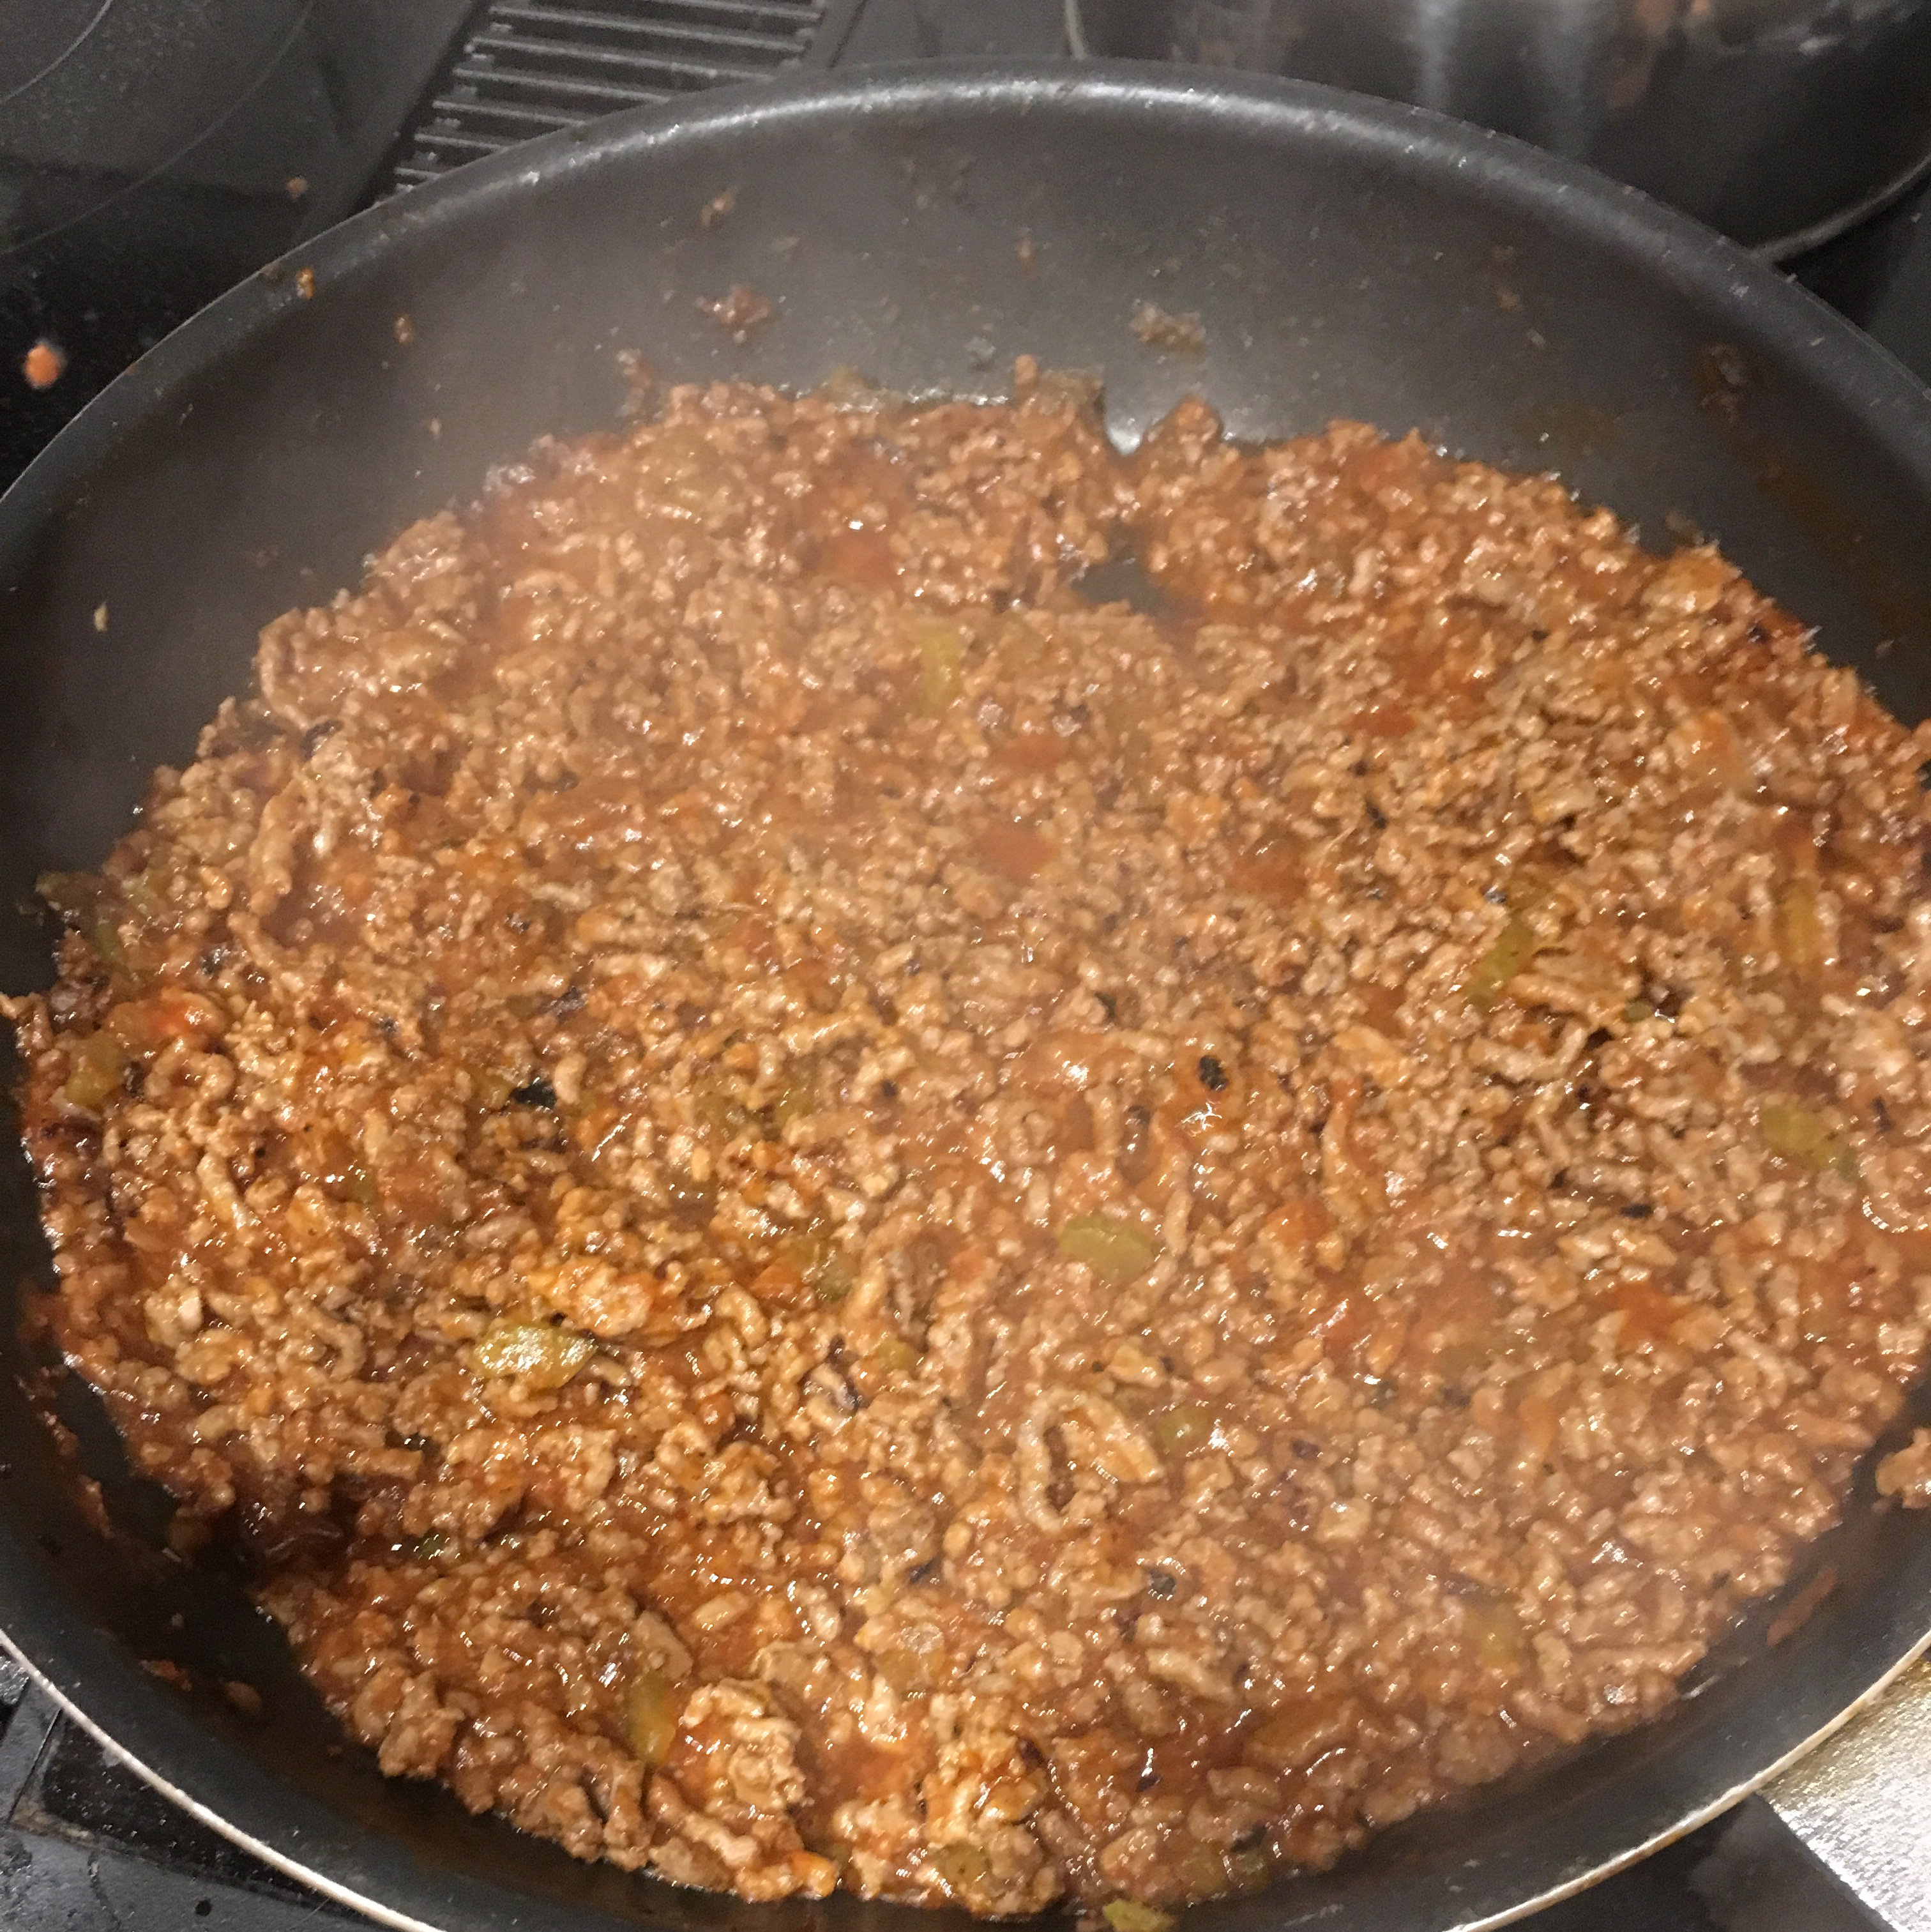 Neat Sloppy Joes